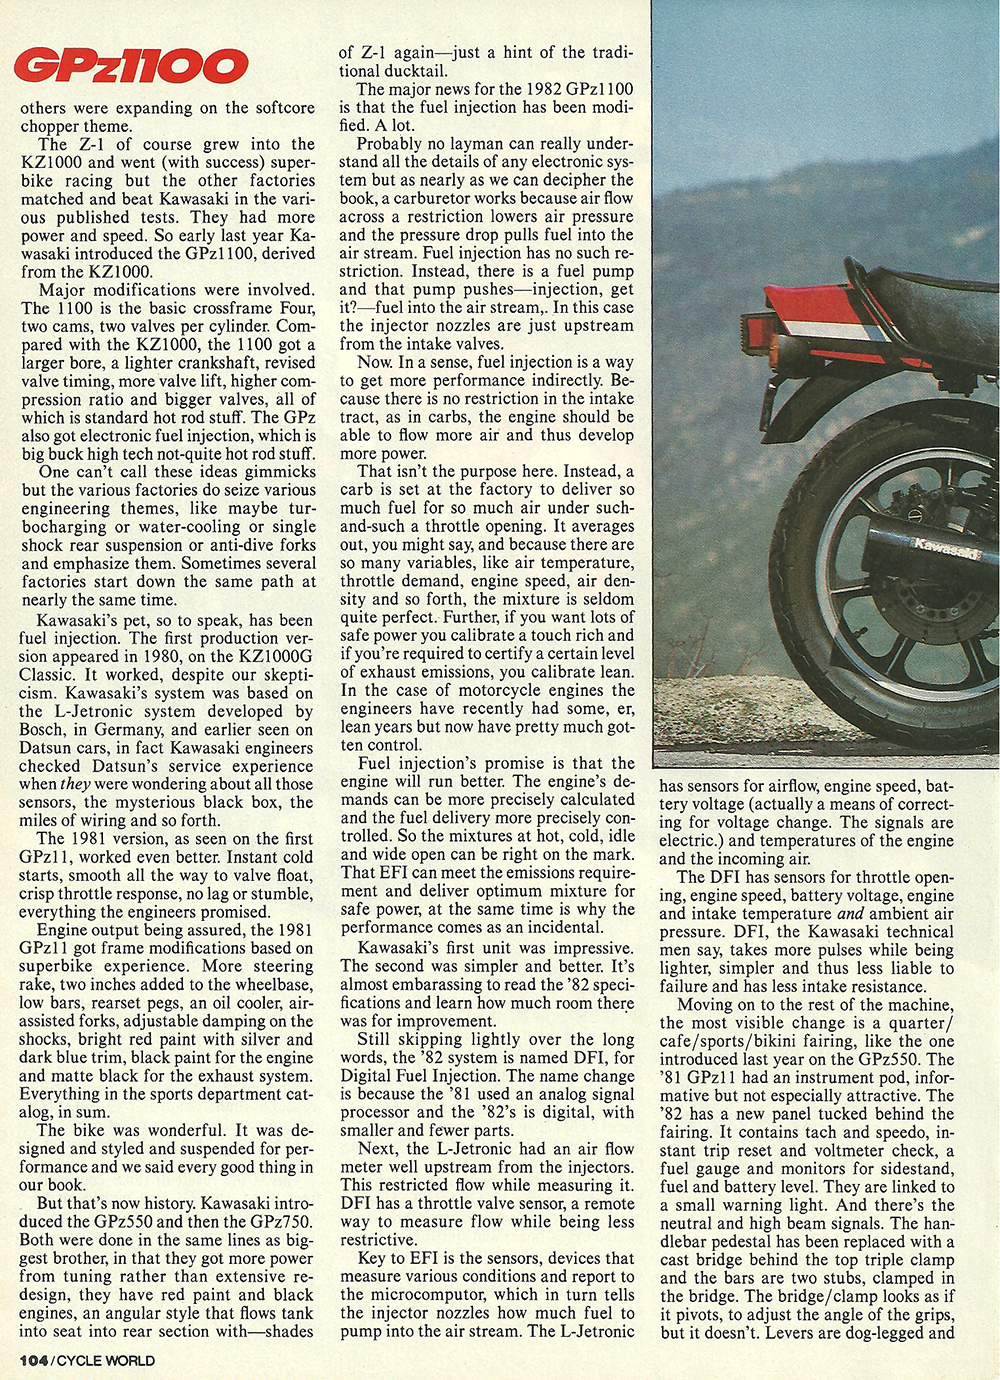 1982 Kawasaki GPz1100 road test 02.jpg